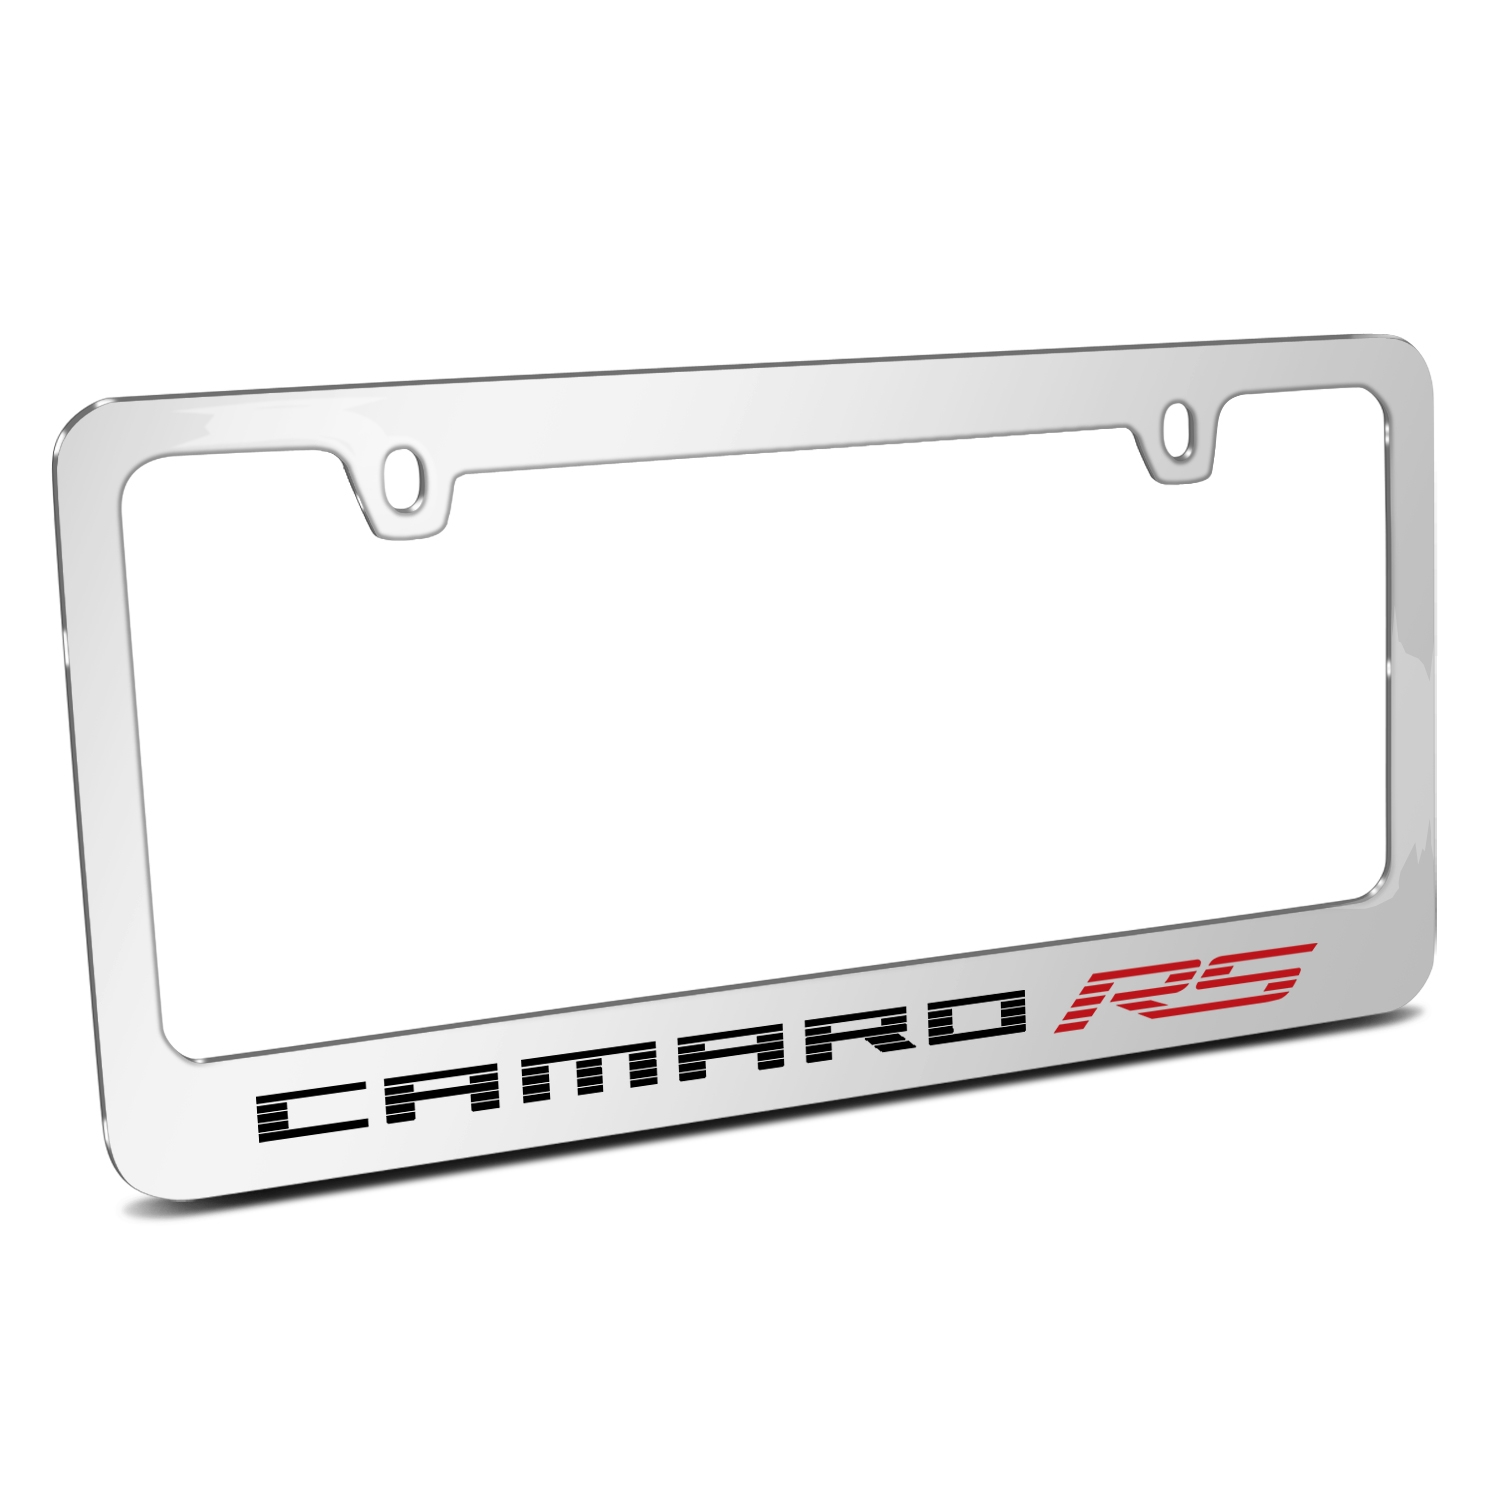 Chevrolet Camaro RS 2010 Speed-Line Chrome Metal License Plate Frame